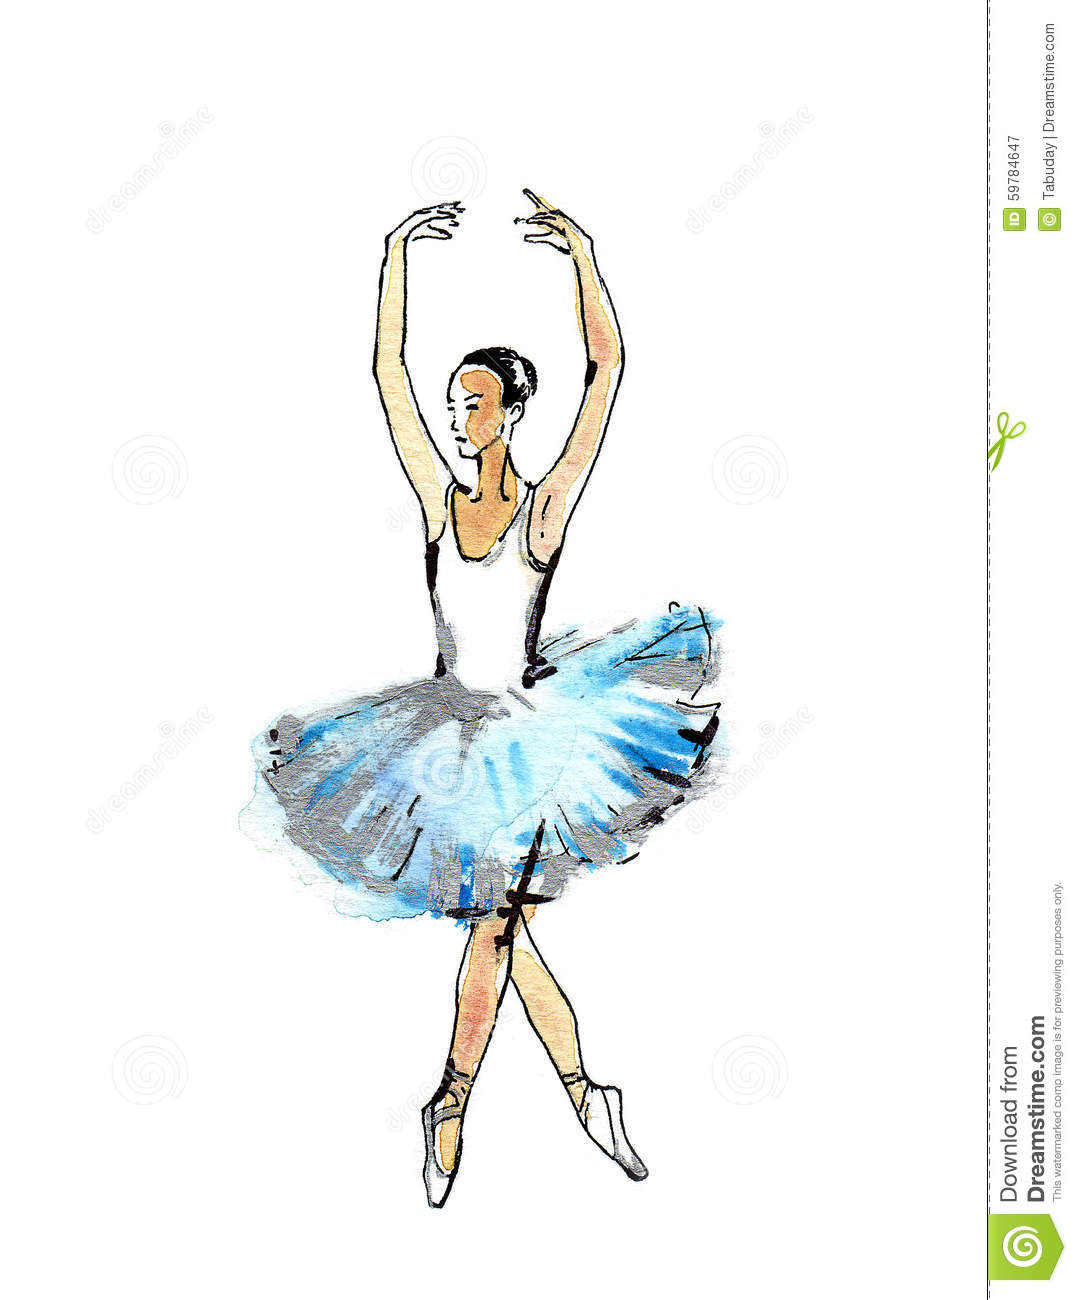 Ballet dancer black and silver drawing on a blue watercolor white